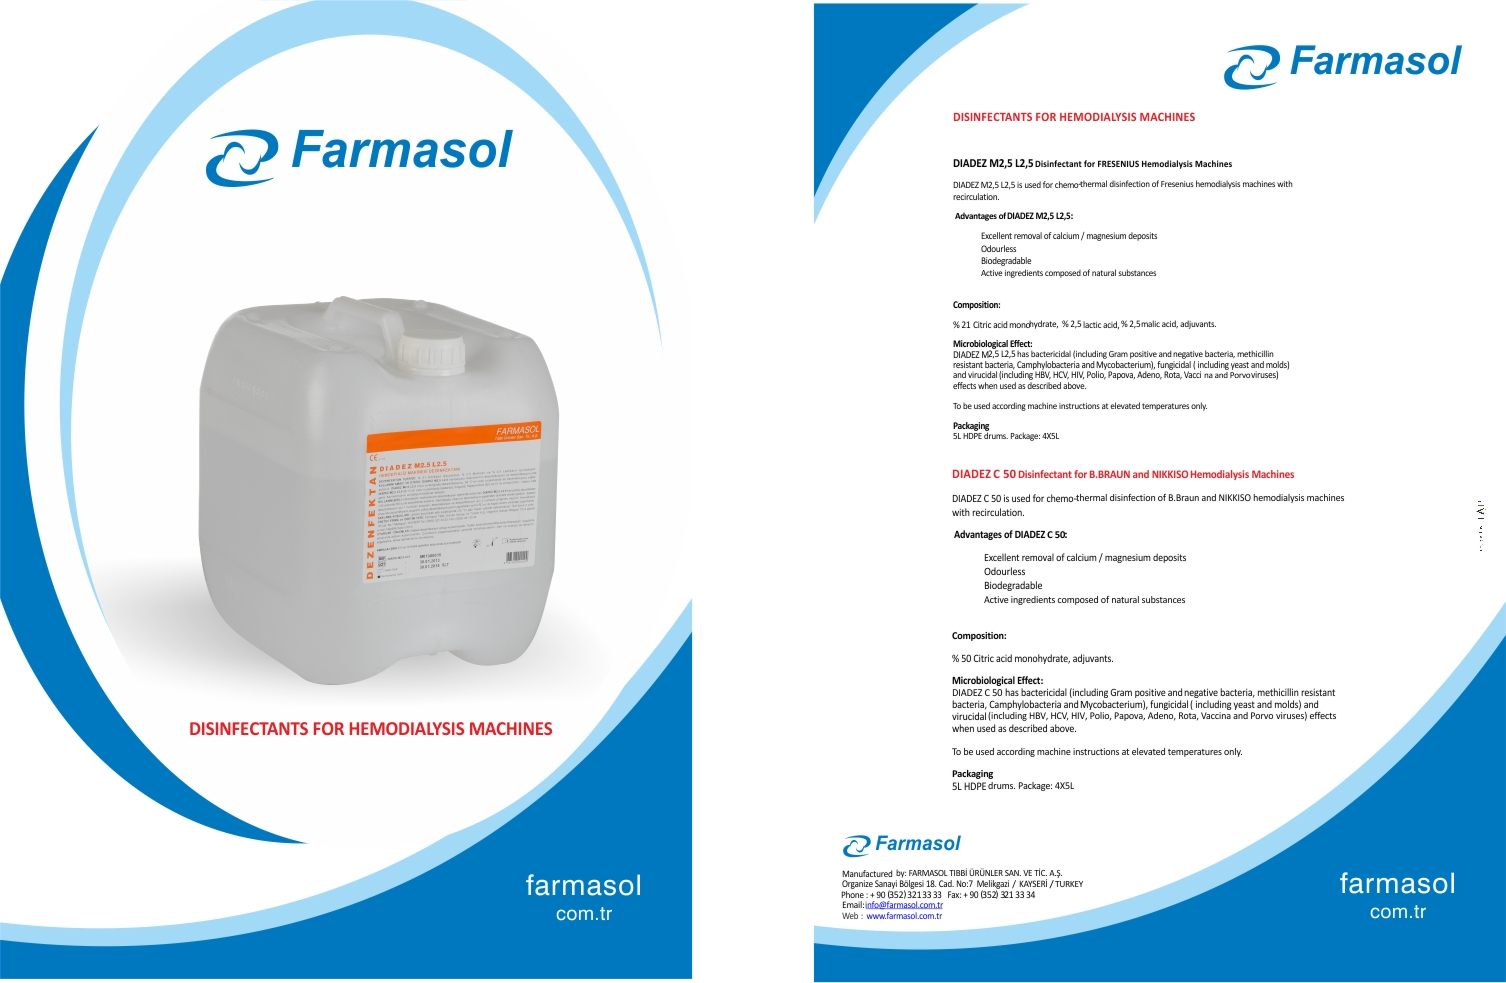 Diadez C 50 Disinfectant Brochure